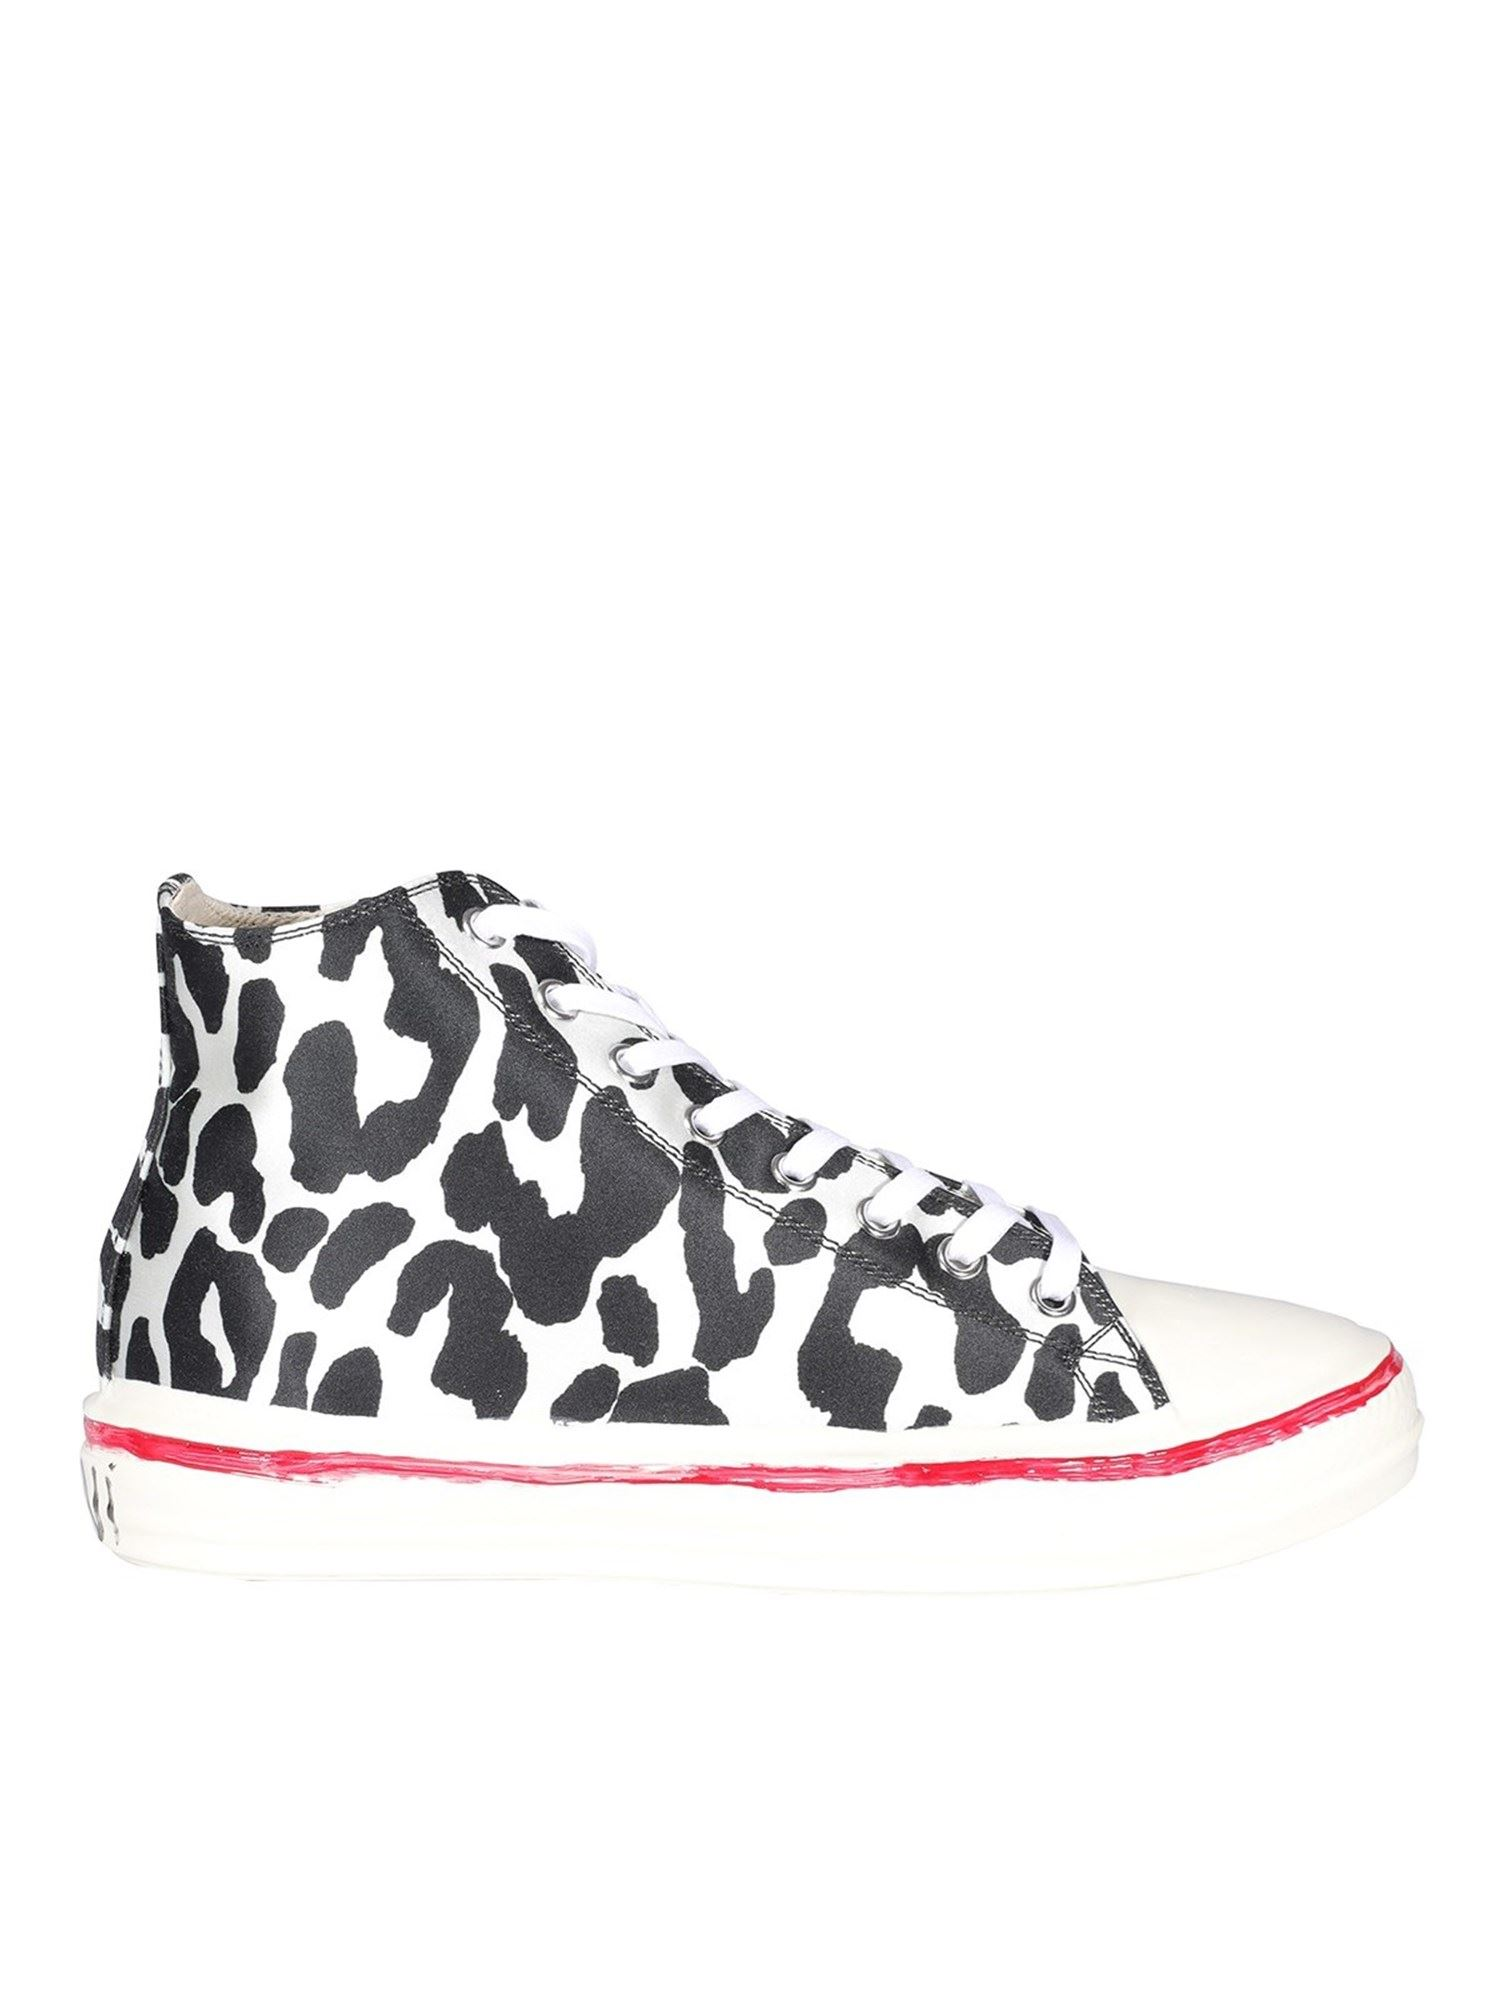 Marni Sneakers GOOEY SNEAKERS IN WHITE AND BLACK